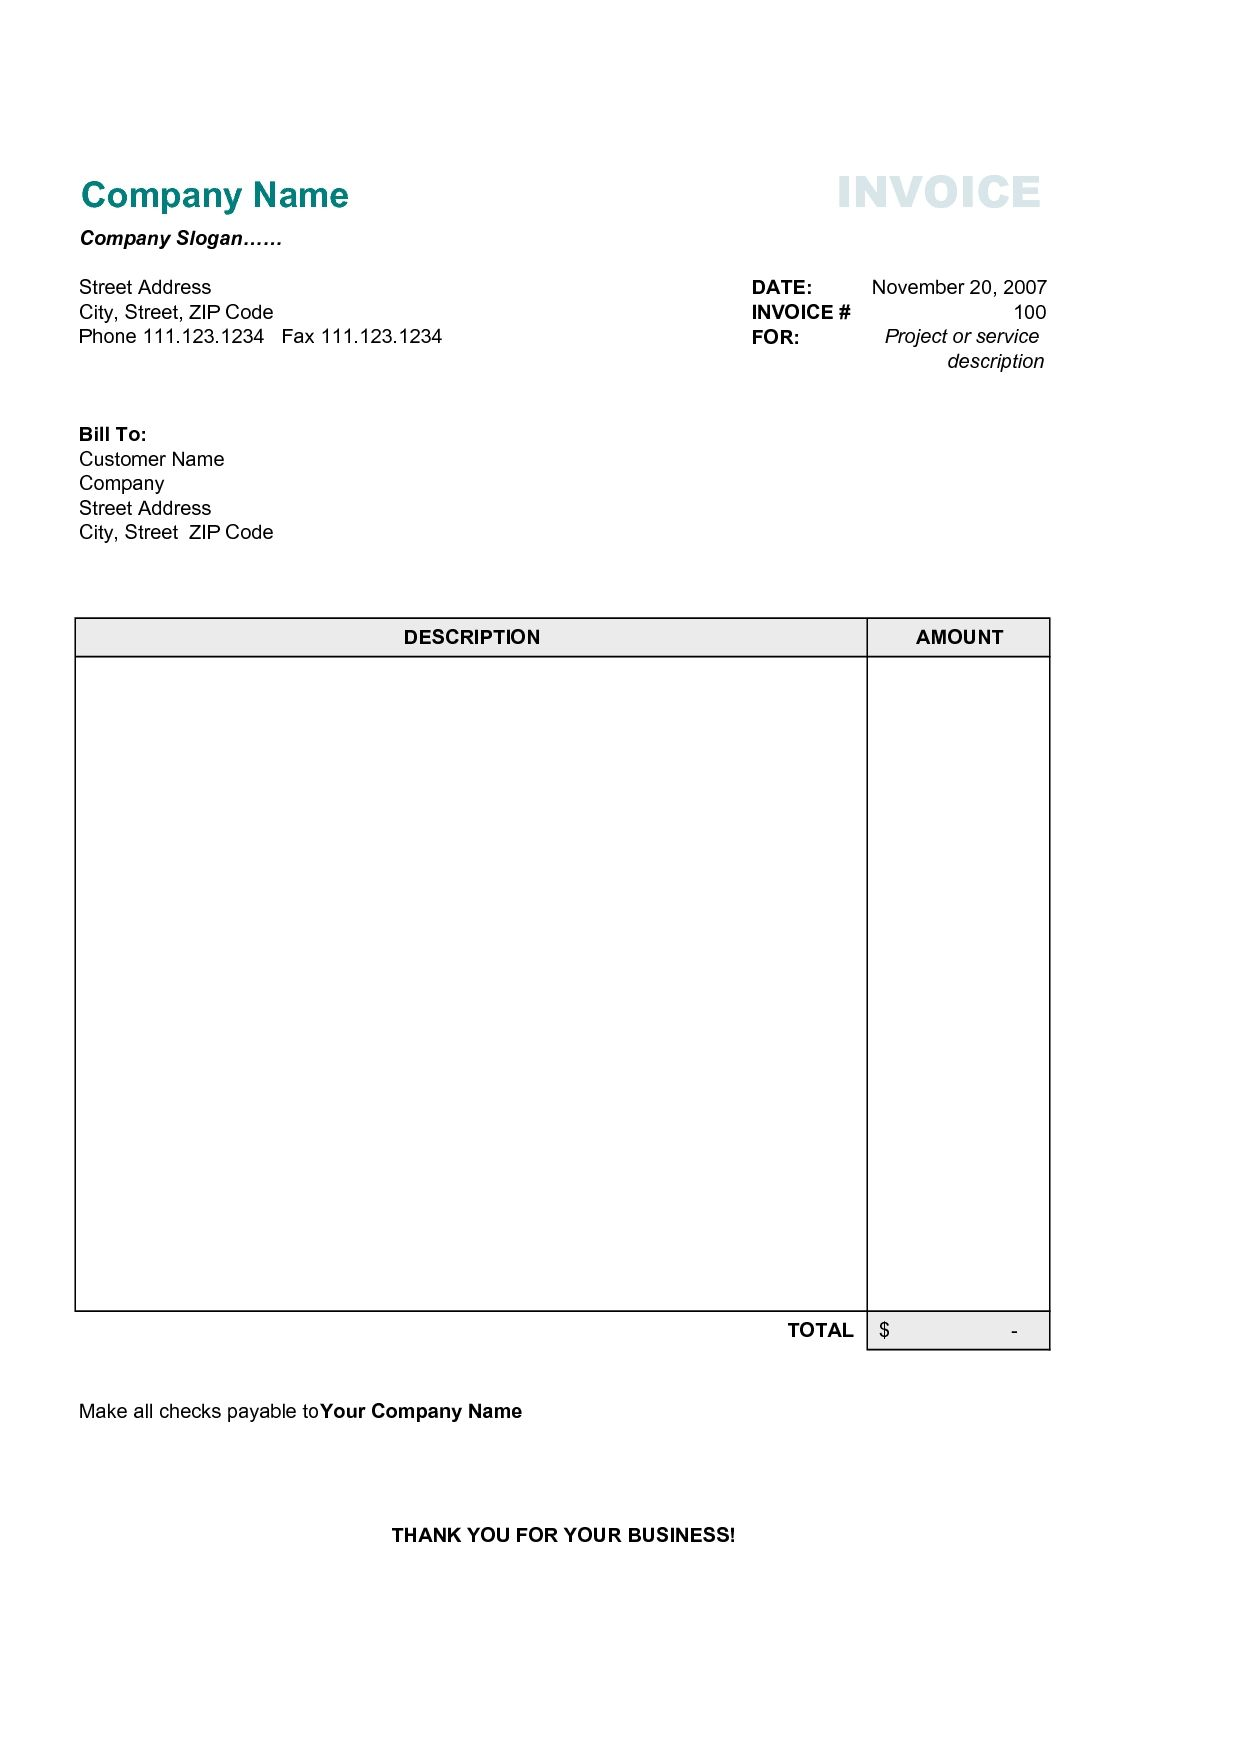 Free Business Invoice Template Best Business Template Free Invoice - Free business invoice template